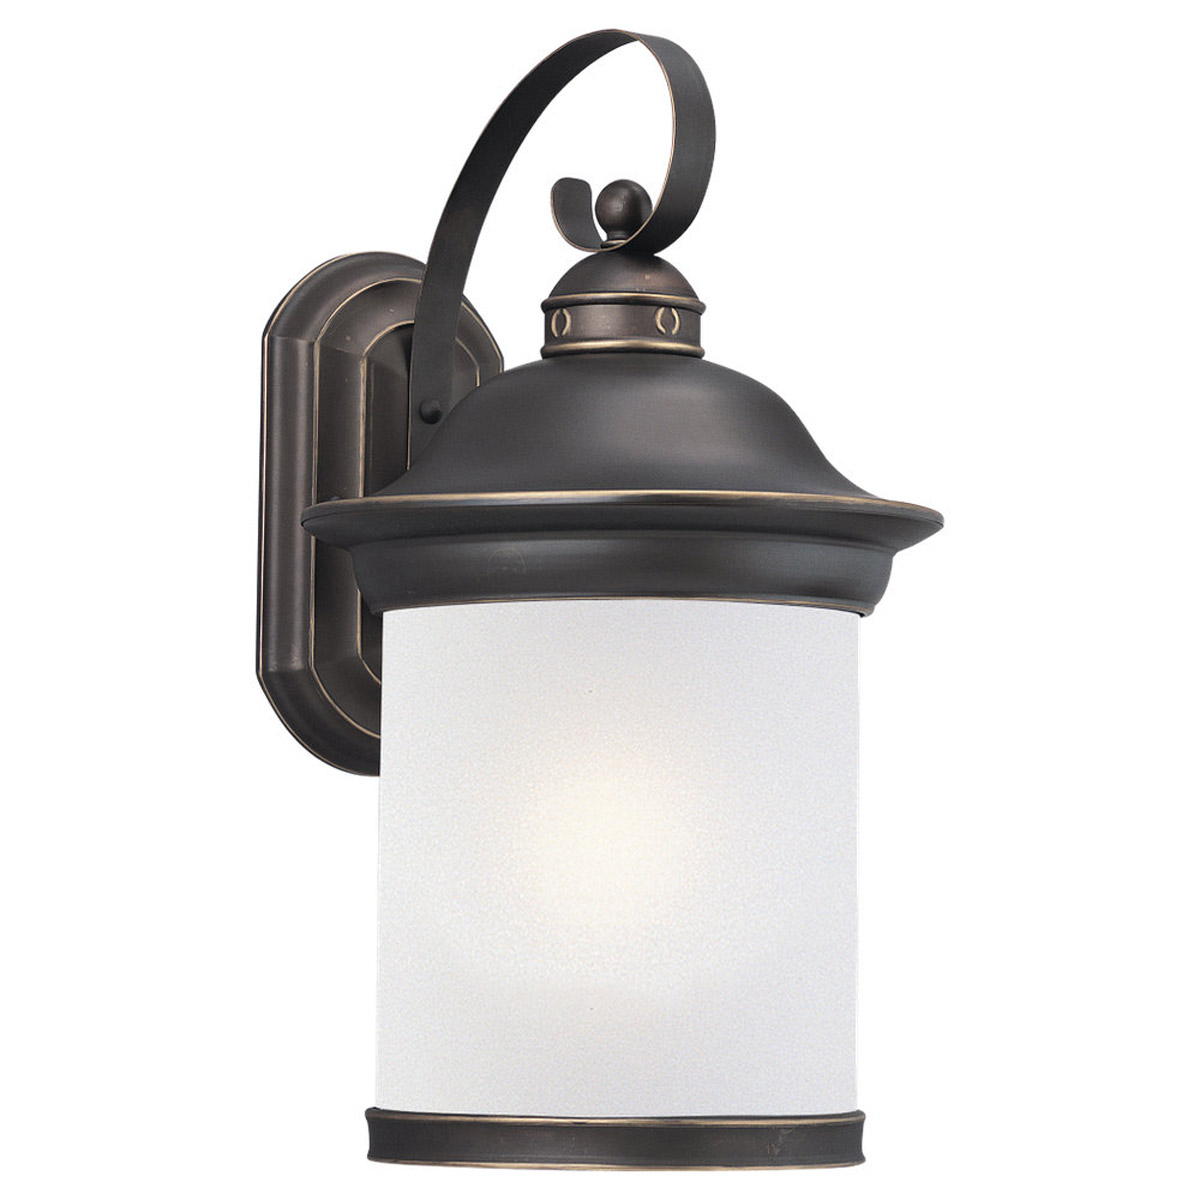 Sea Gull Lighting Hermitage 1 Light Outdoor Wall Lantern in Antique Bronze 89193BL-71 photo